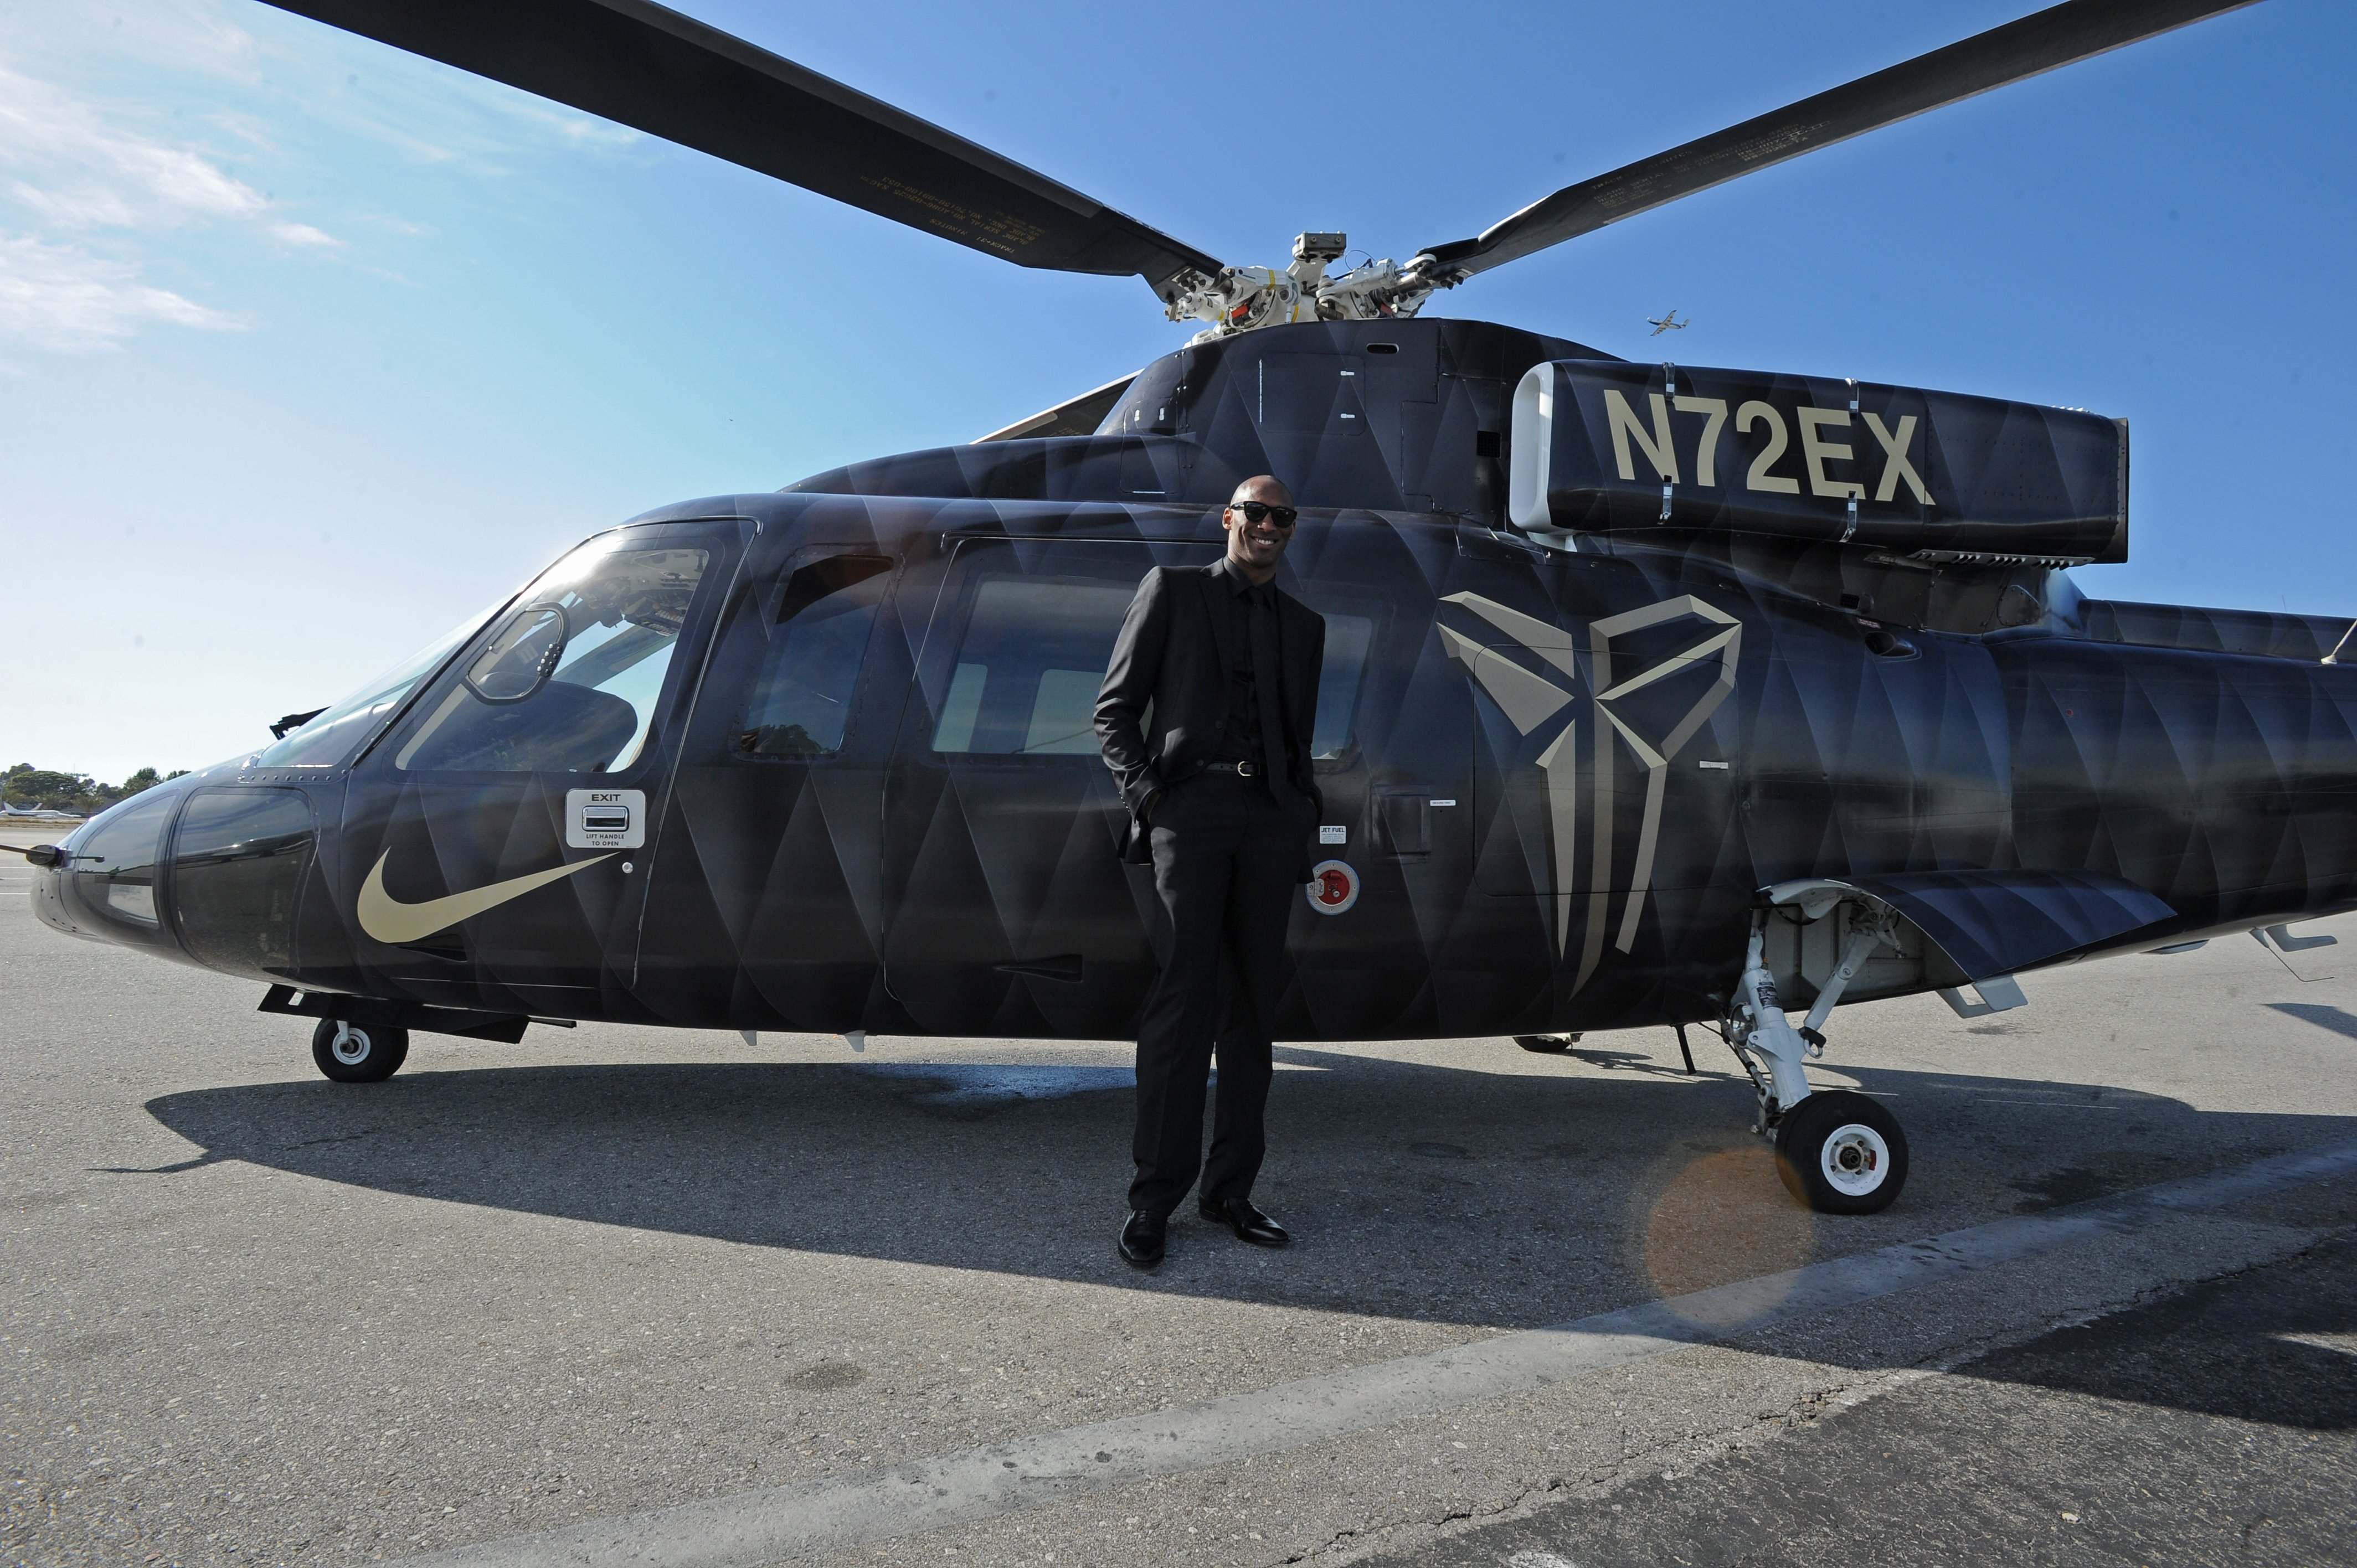 Kobe Bryant #24 of the Los Angeles Lakers poses for a photo in front of the helicopter he took to his last game against the Utah Jazz on April 13, 2016, at Staples Center in Los Angeles, California. | Source: Getty Images.